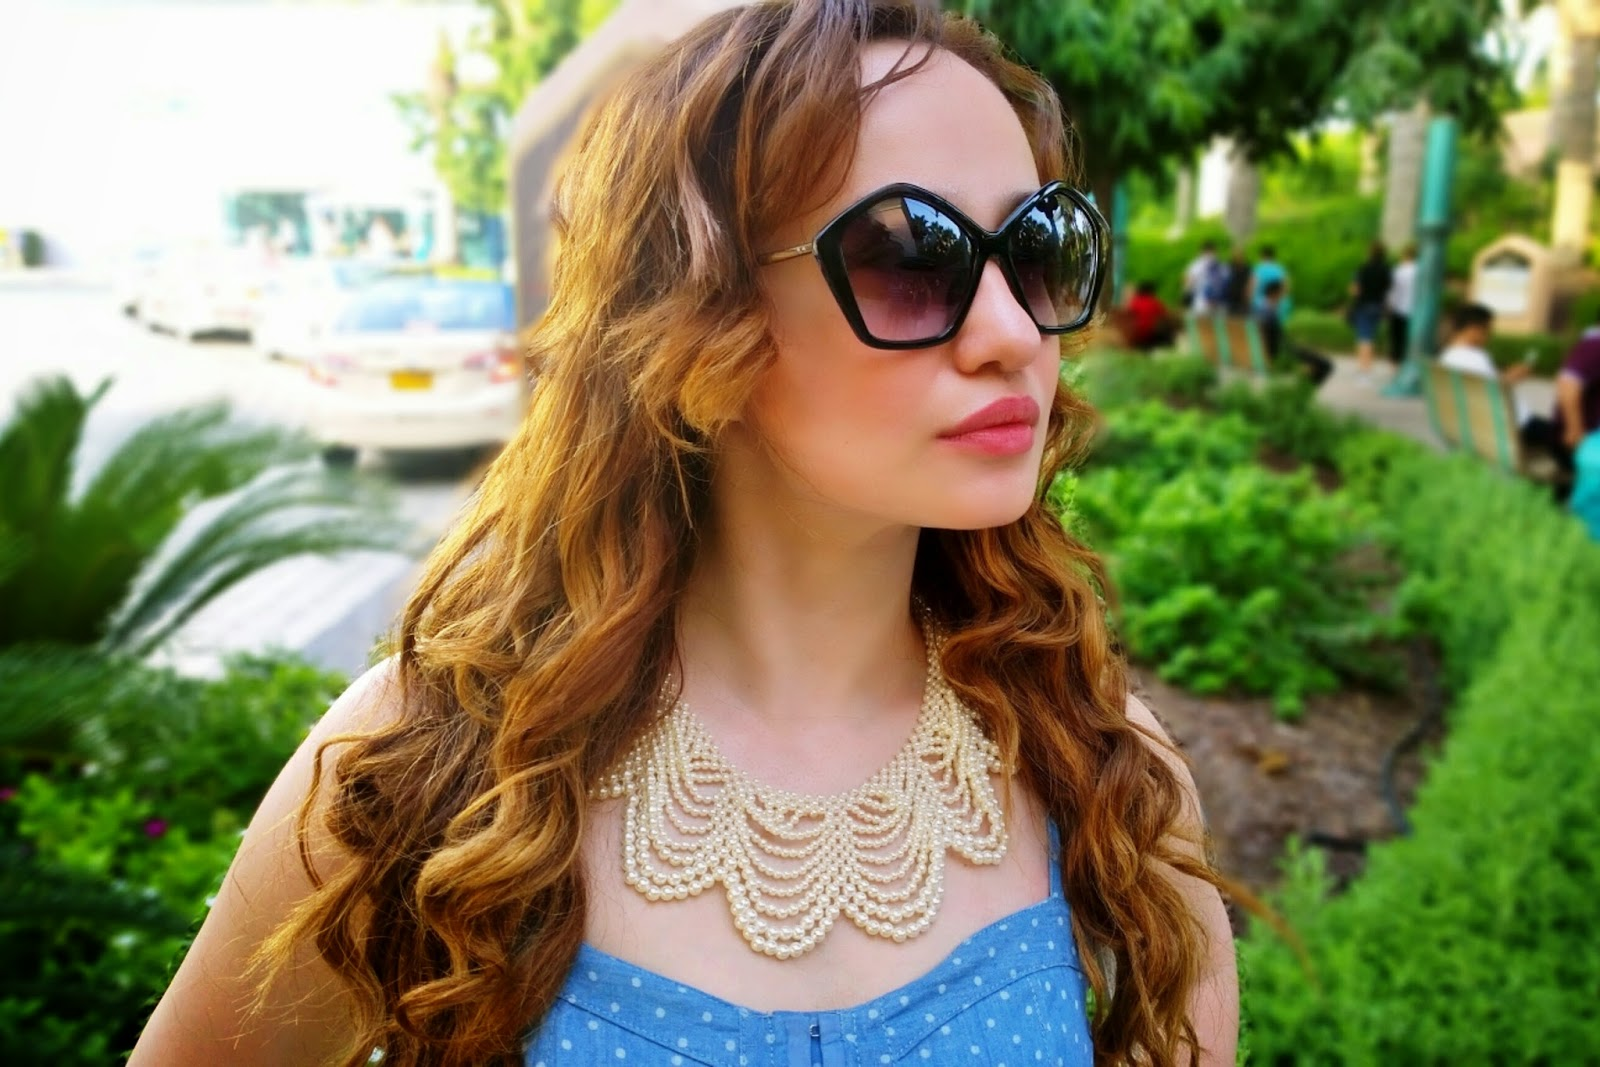 Pearl Necklace & Pentagon Retro Sunglasses